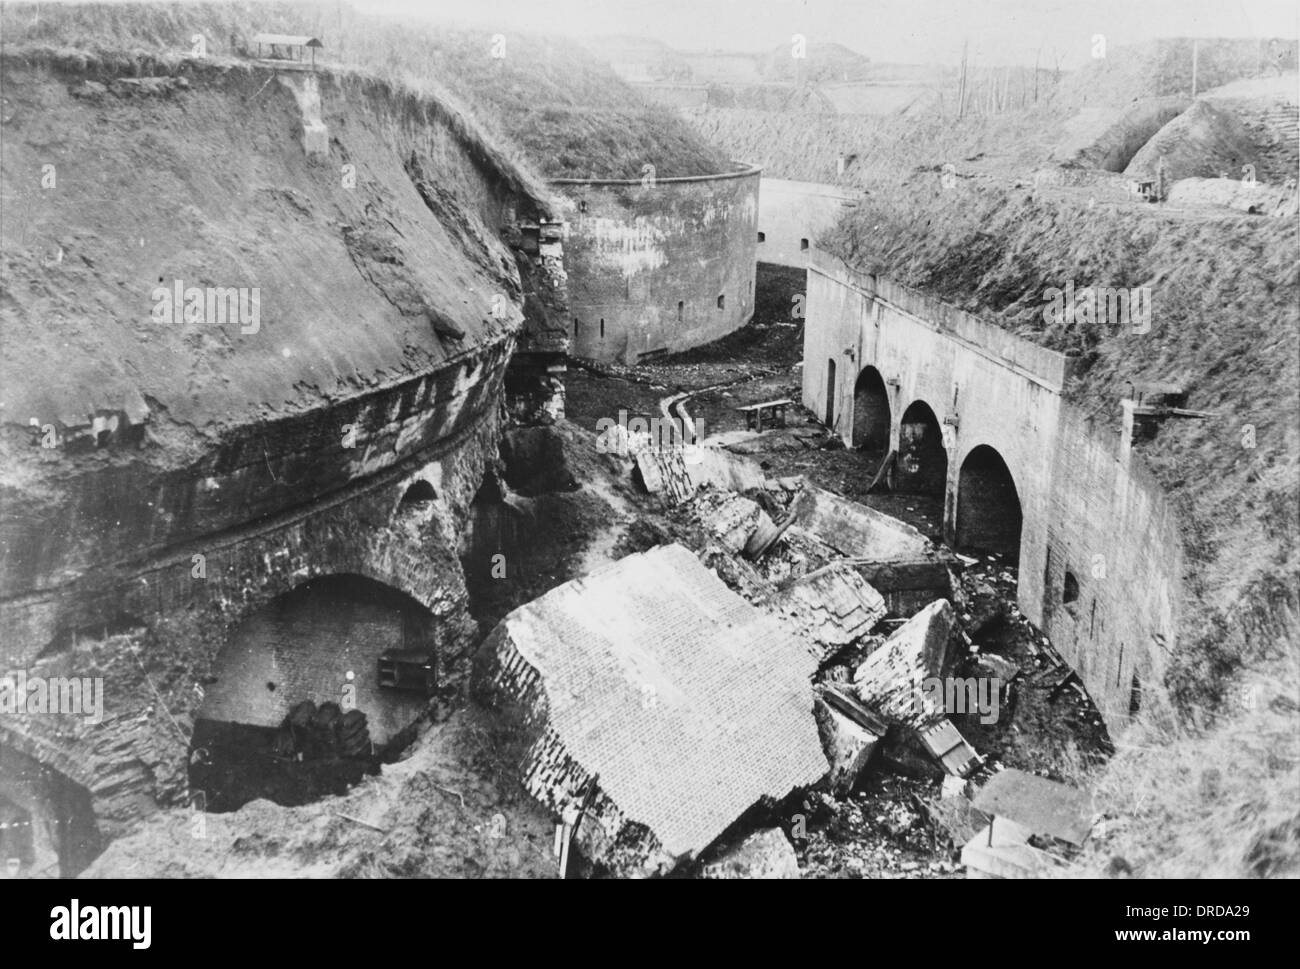 Destroyed fortifications WWI - Stock Image